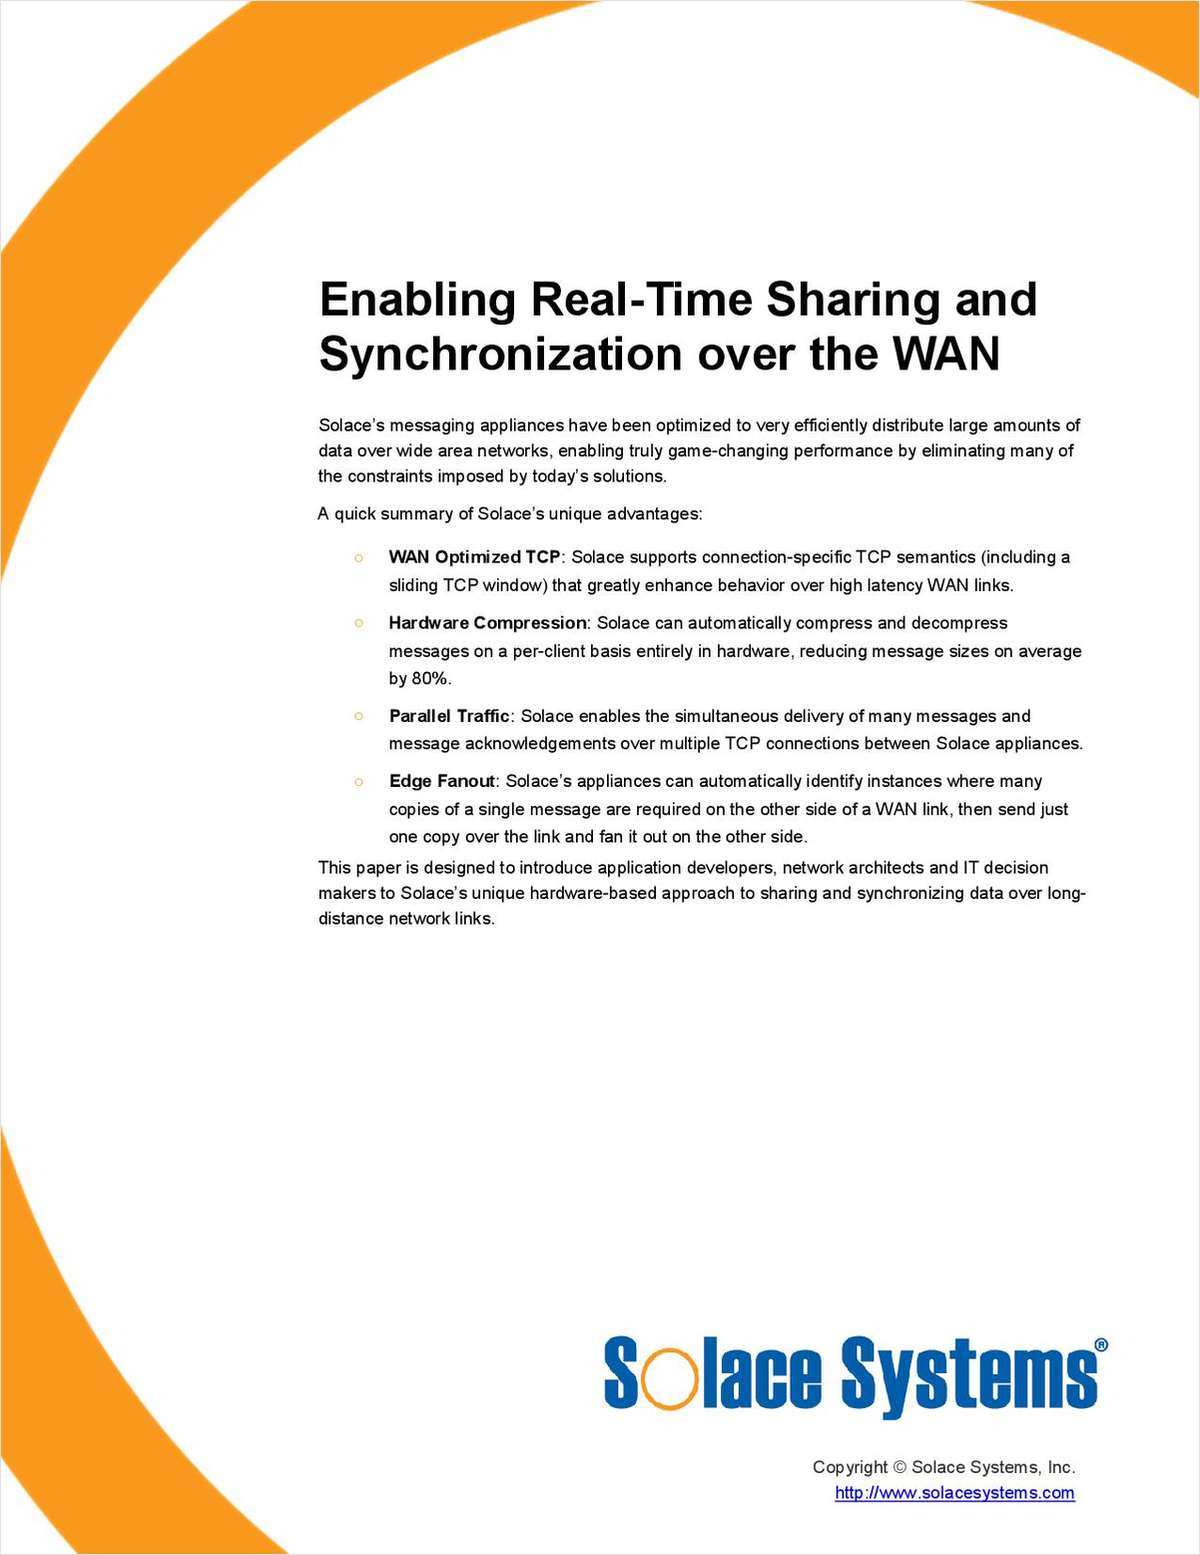 Enabling Real-Time Sharing and Synchronization over the WAN